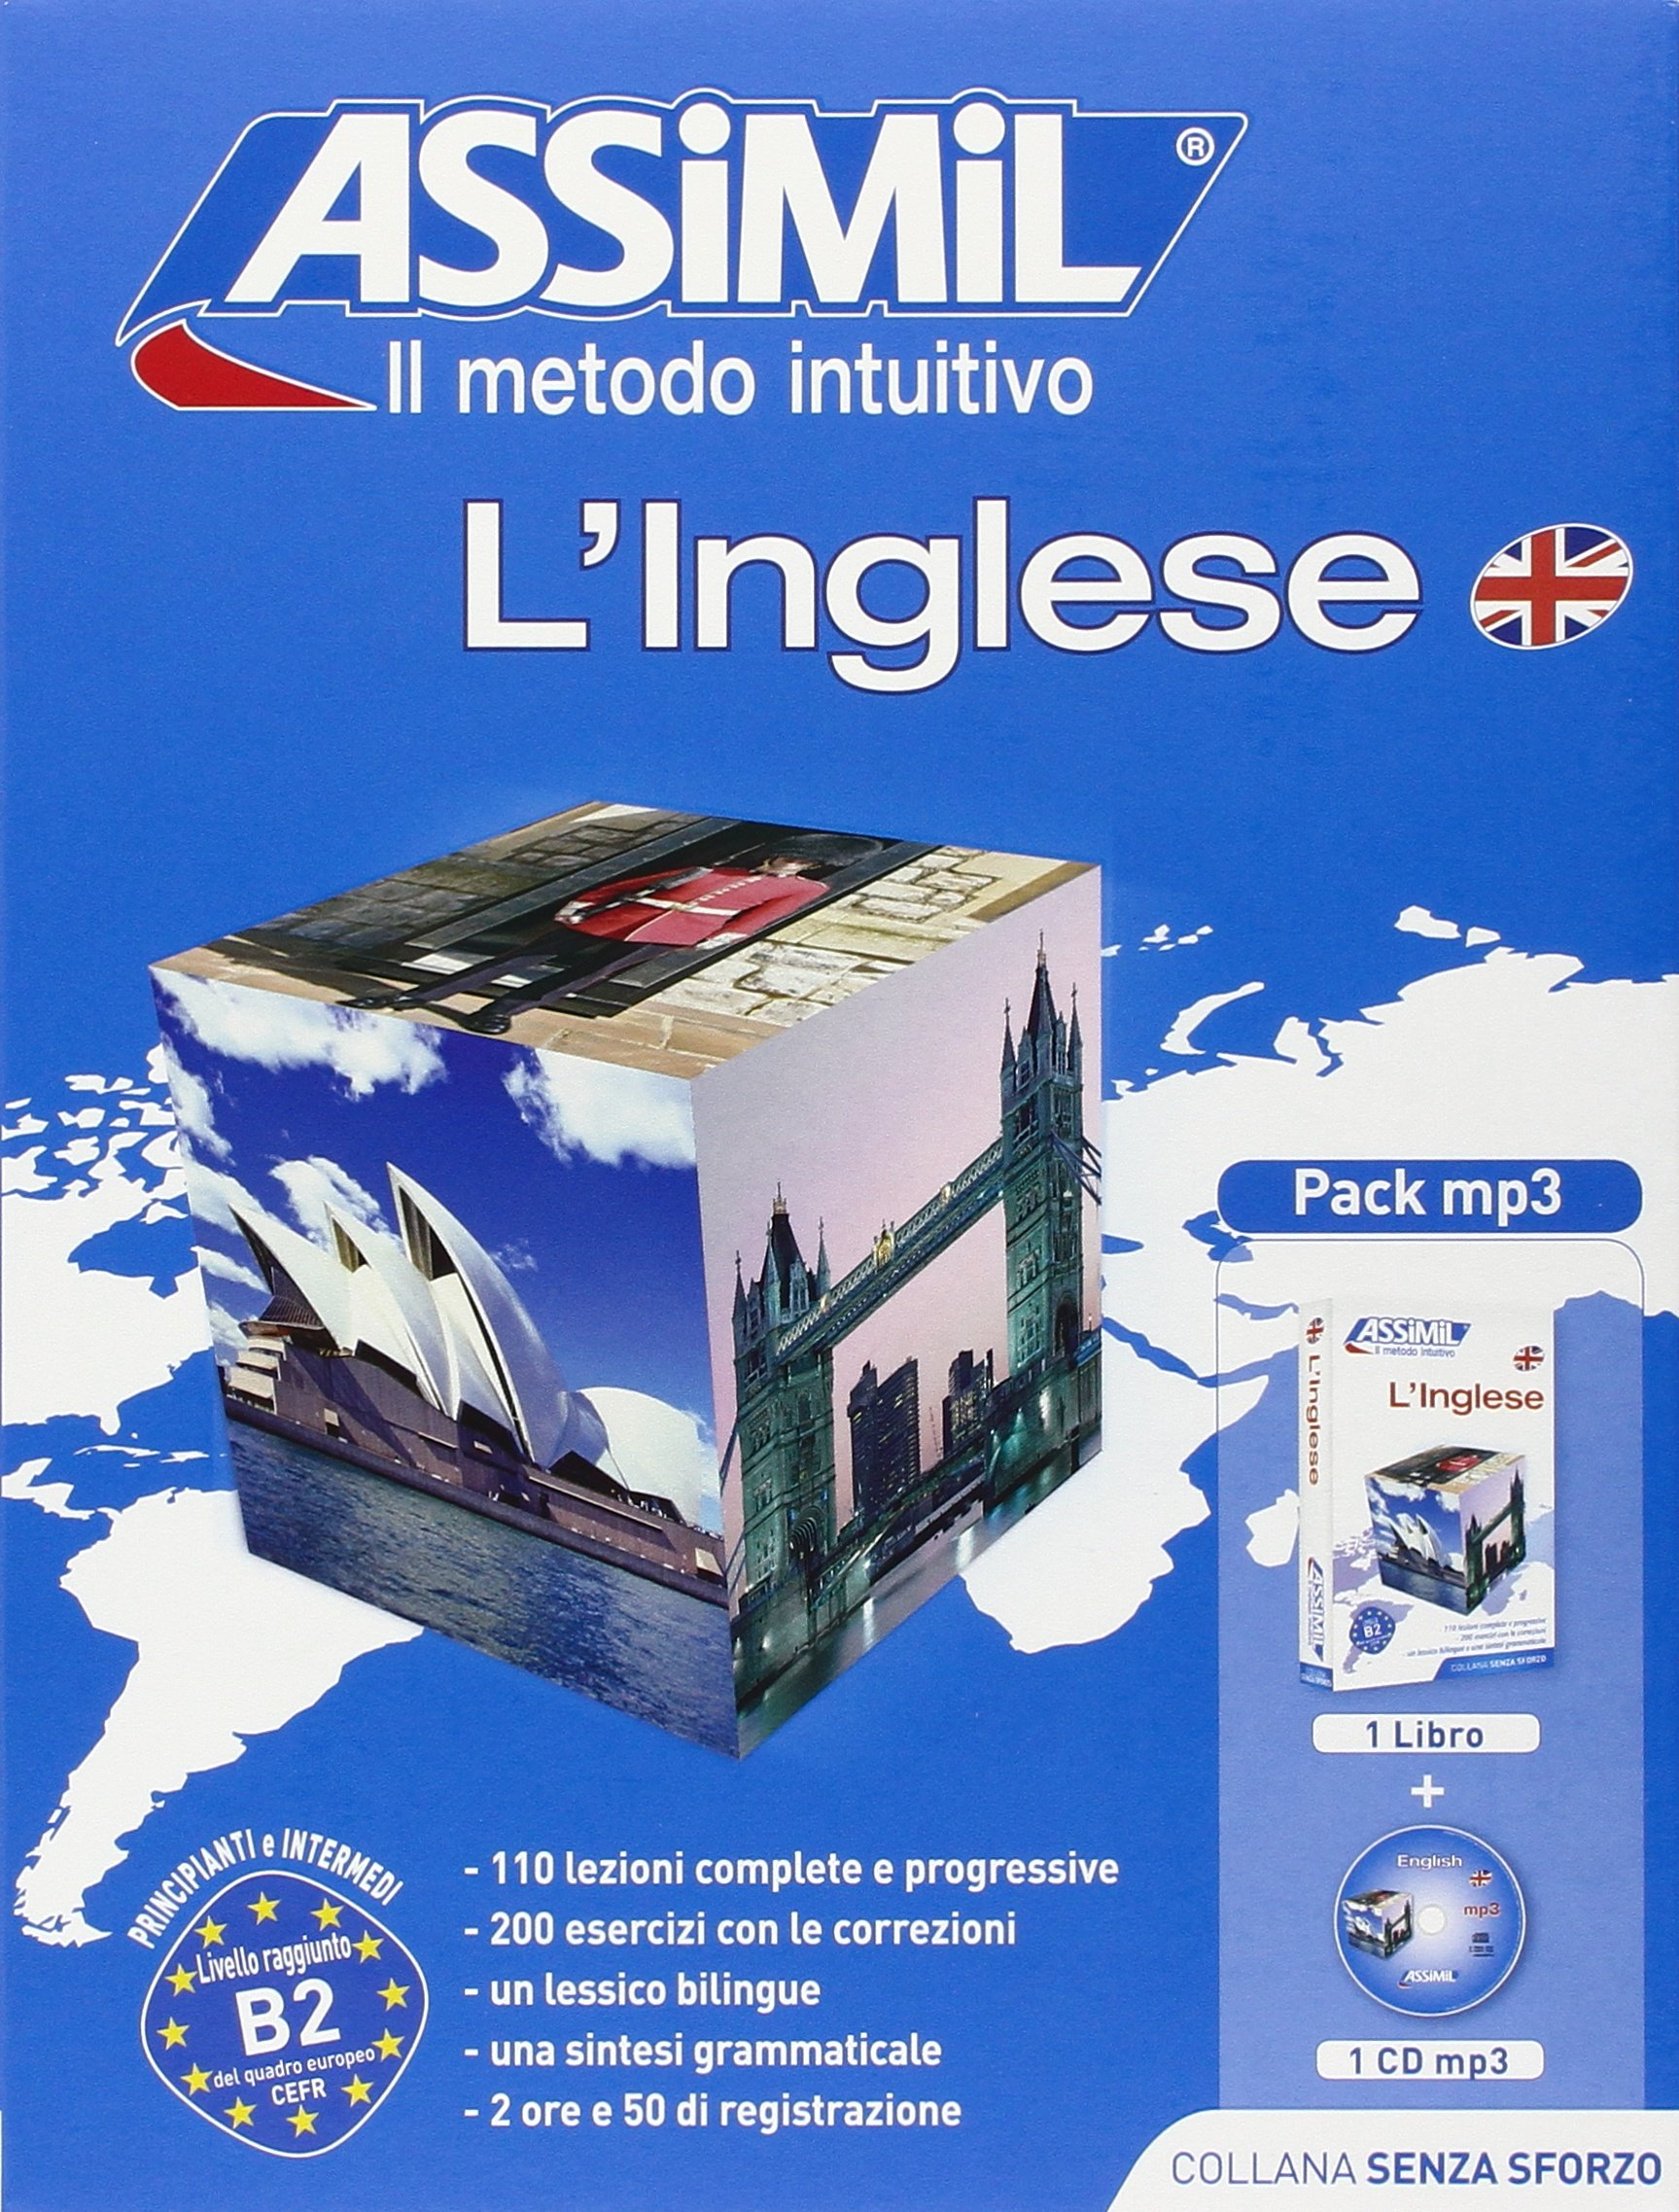 ASSIMIL INGLESE MP3 SCARICARE